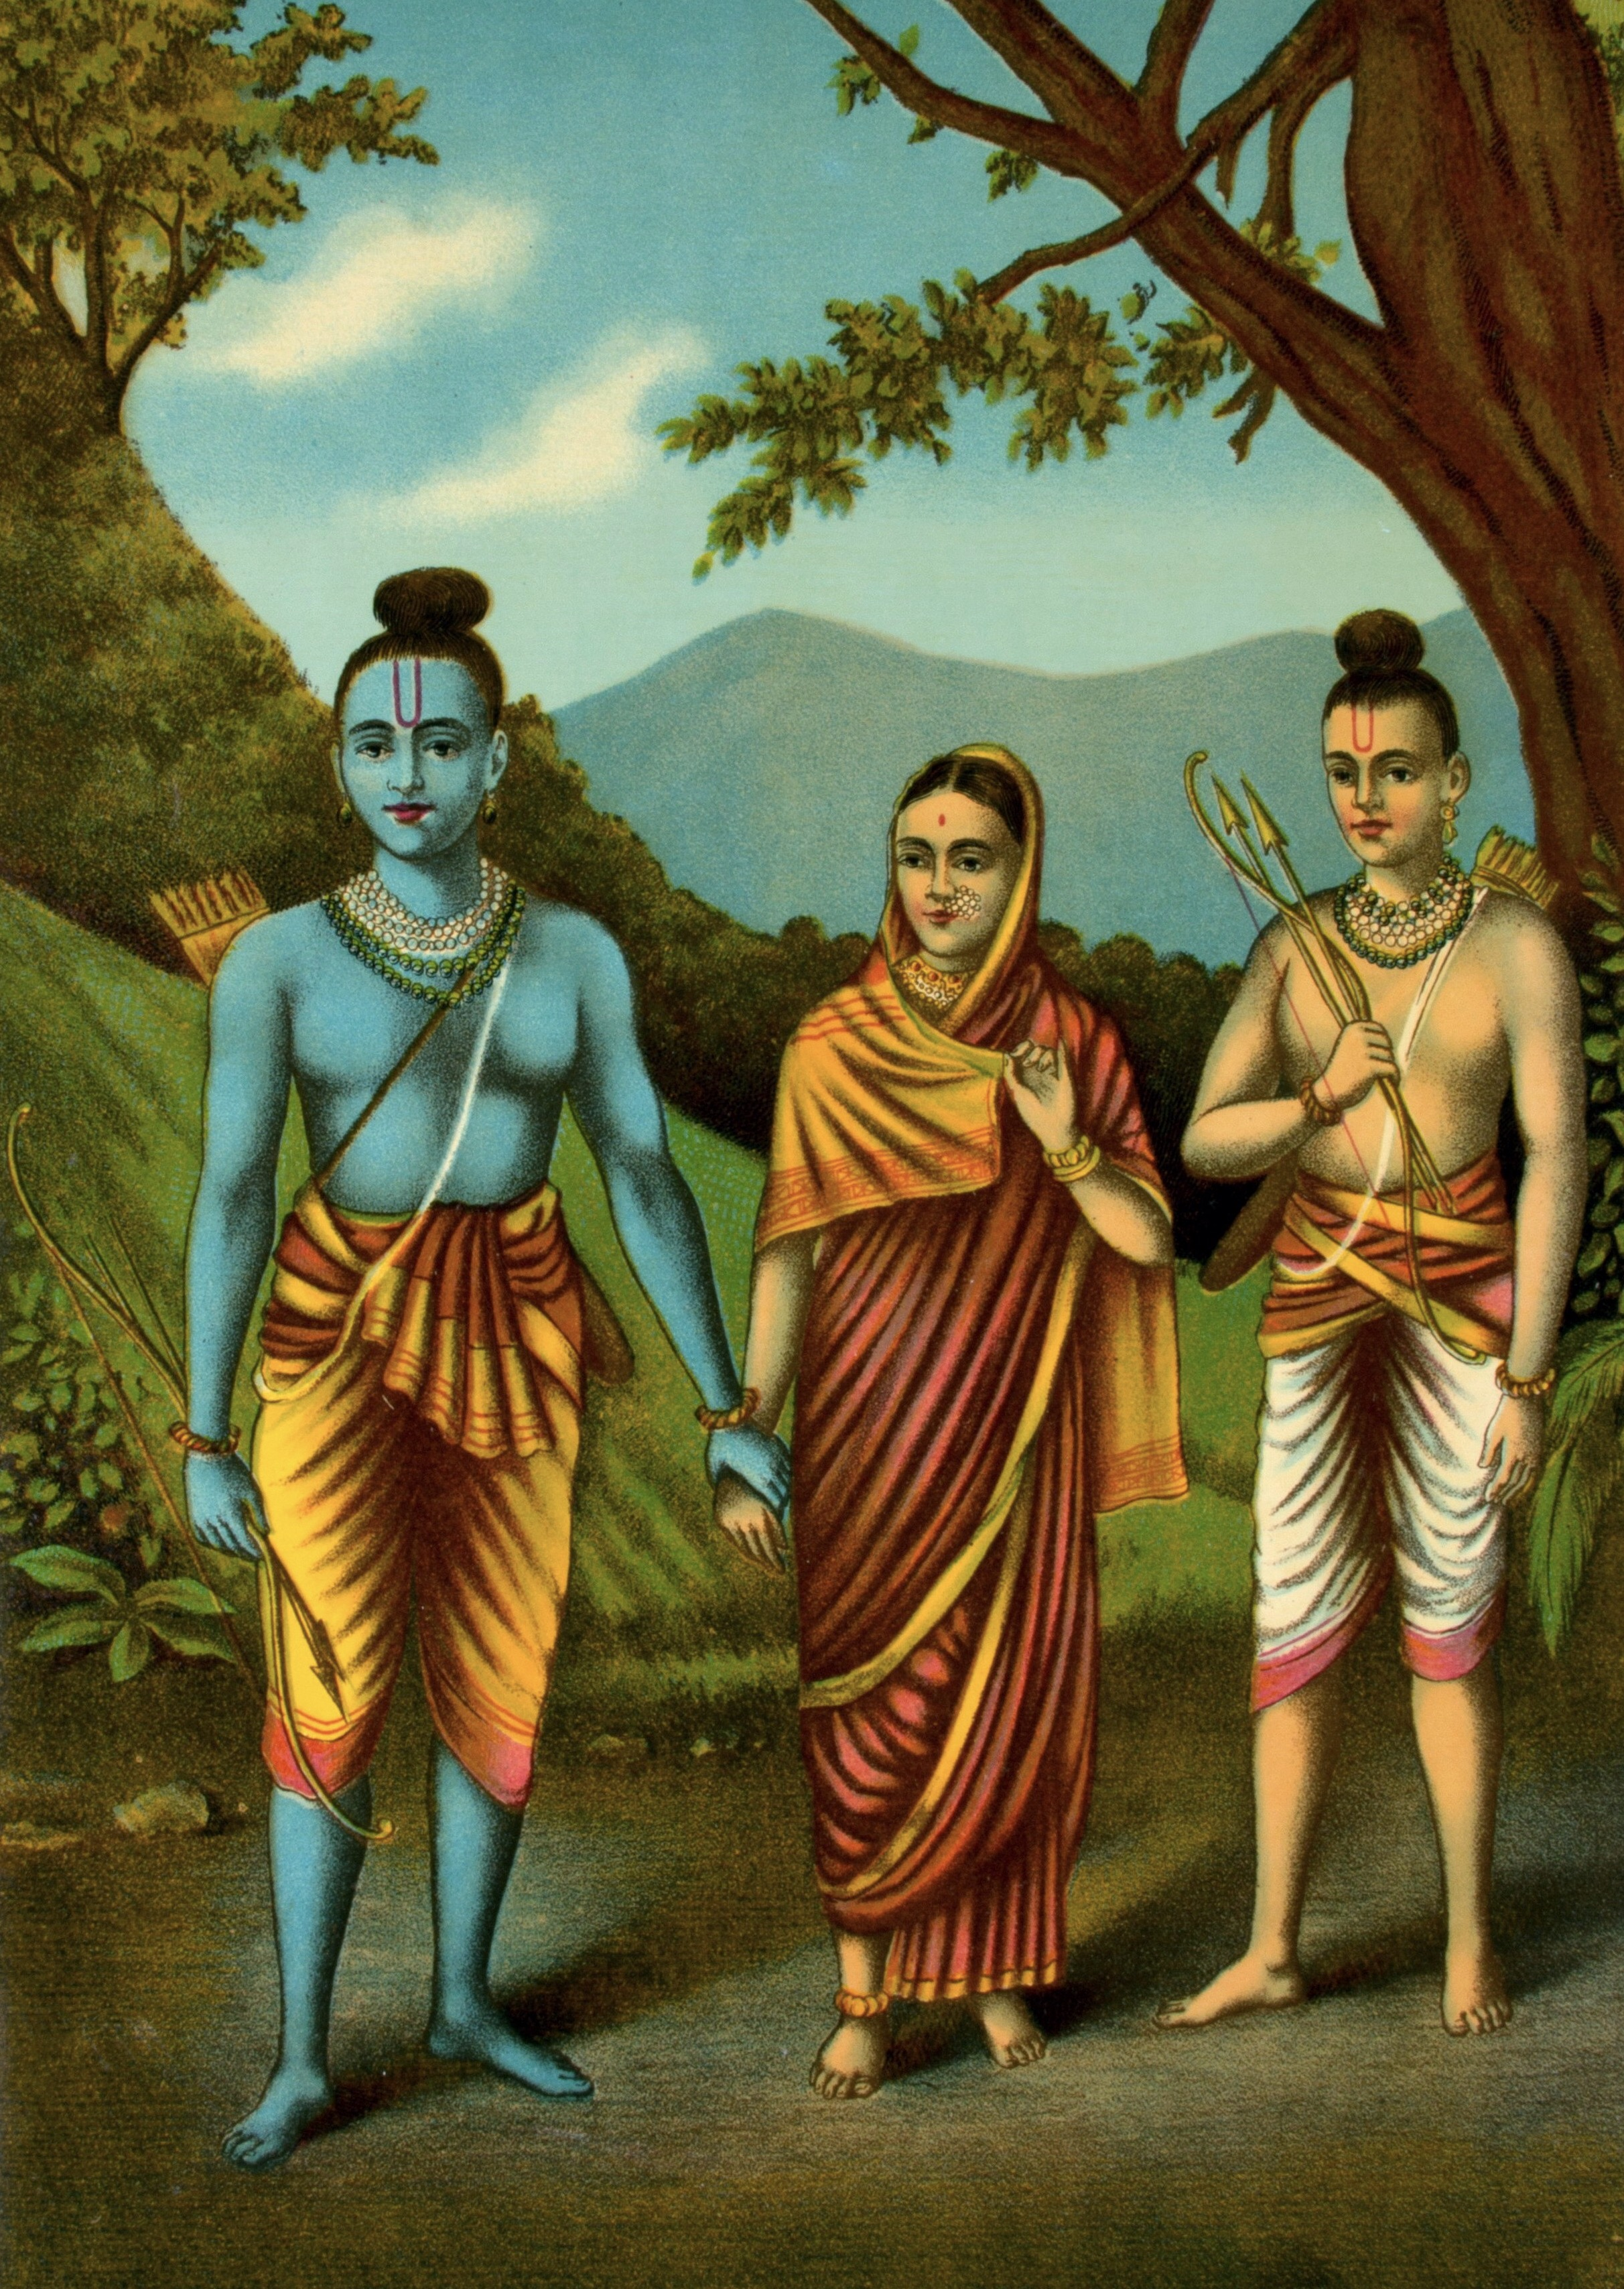 ramayana character rama Lessons of the indian epics: following the dharma  rama, as a good character,  where many people see rama in themselves, and the ramayana as a story about.